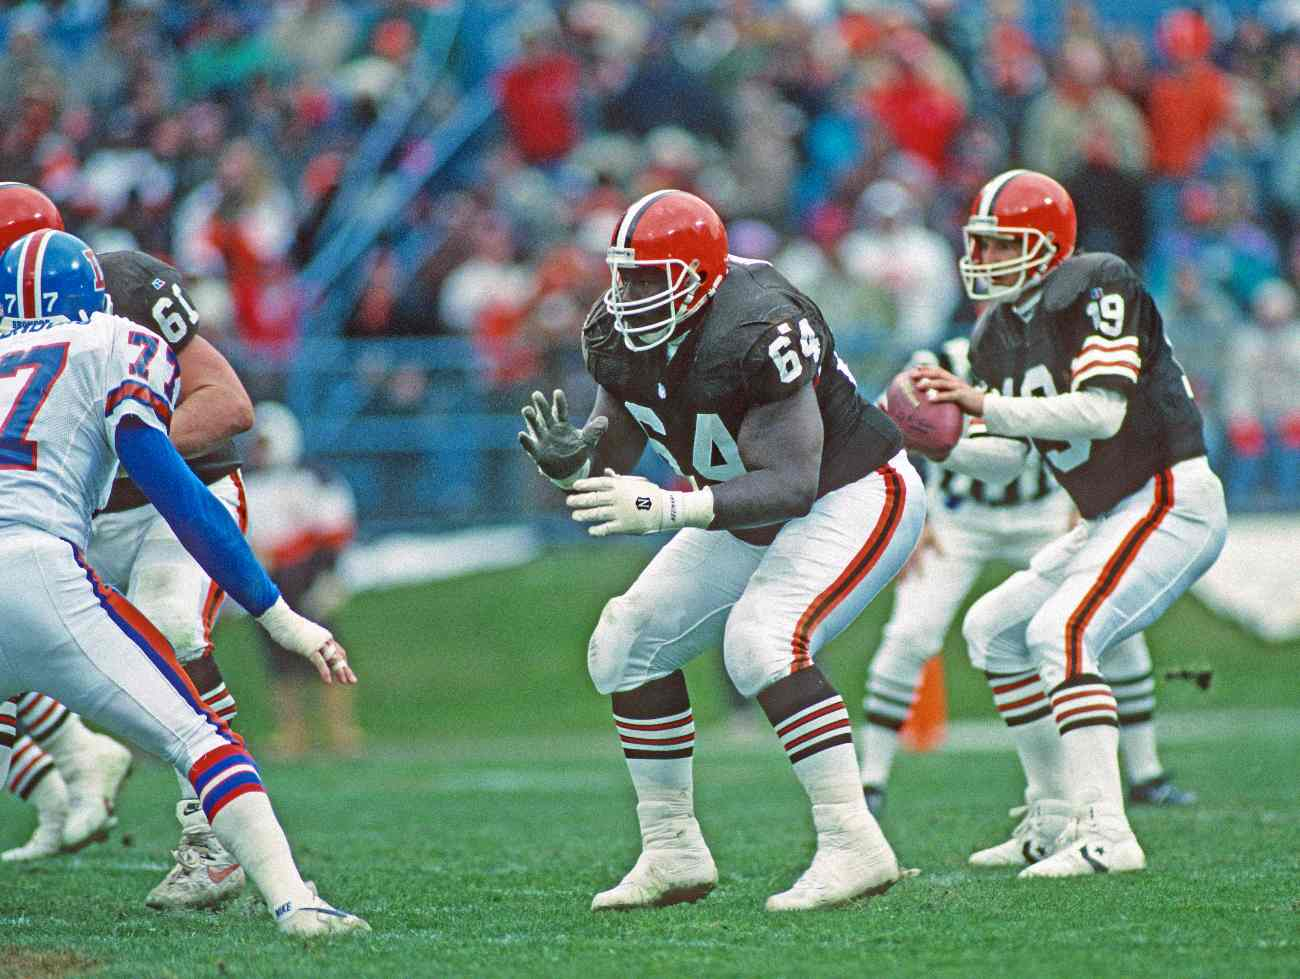 CLEVELAND, OH - NOVEMBER 7: Offensive lineman Houston Hoover #64 of the Cleveland Browns blocks as quarterback Bernie Kosar #19 looks to pass during a game against the Denver Broncos at Cleveland Municipal Stadium on November 7, 1993 in Cleveland, Ohio. The Broncos defeated the Browns 29-14. (Photo by George Gojkovich/Getty Images)